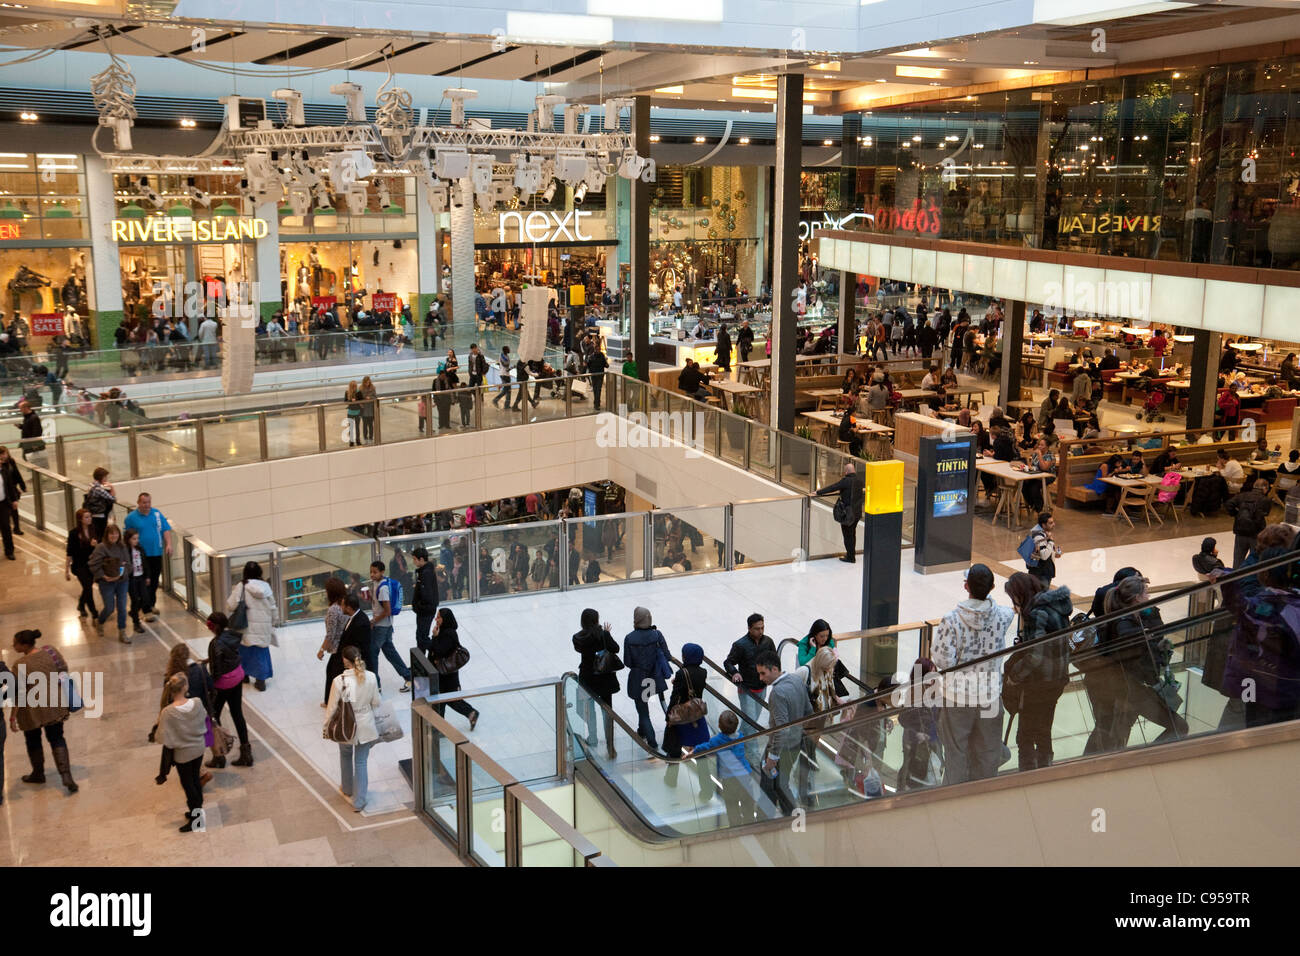 Westfield shopping mall centre, Stratford, London UK - Stock Image